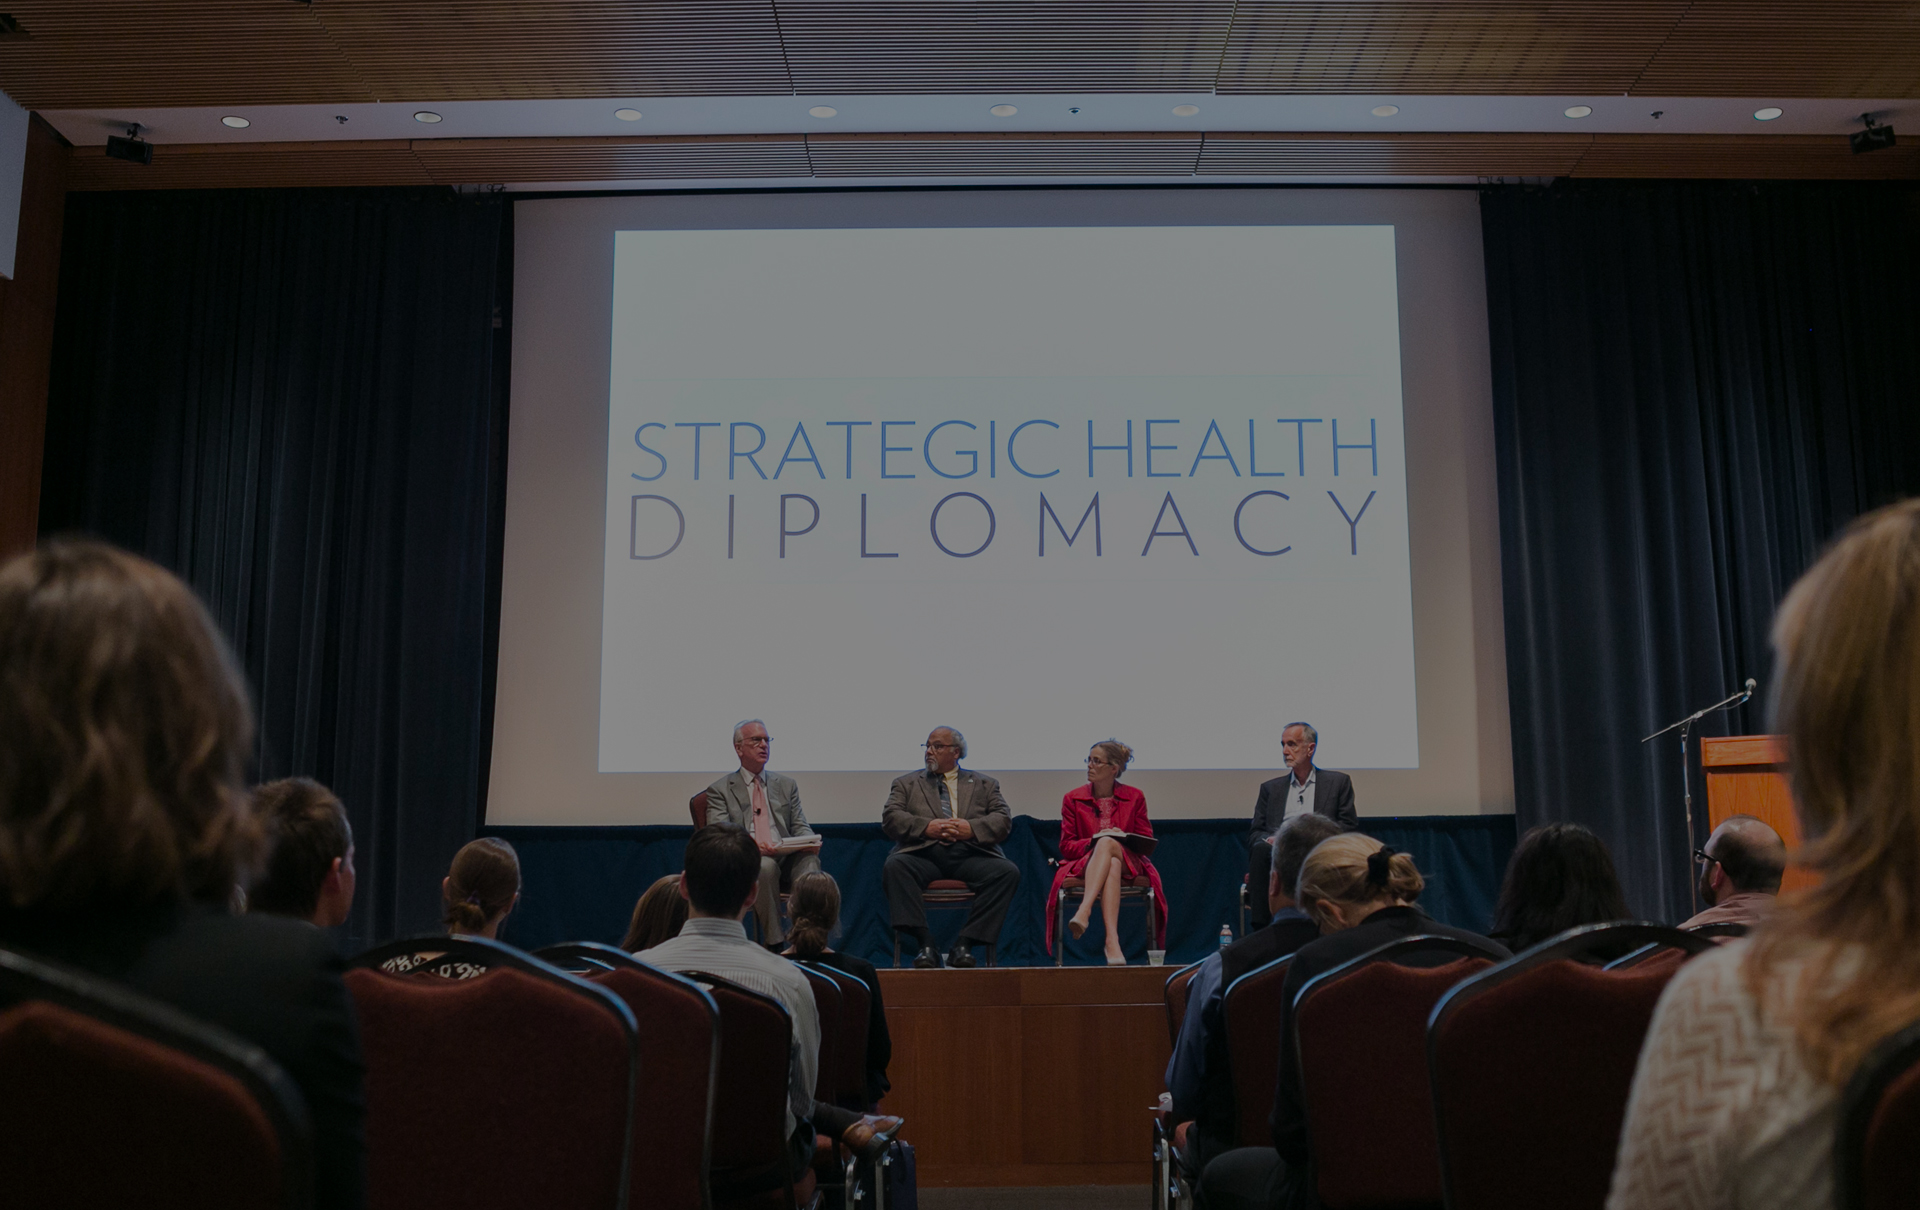 Watch the Conference on Strategic Health Diplomacy